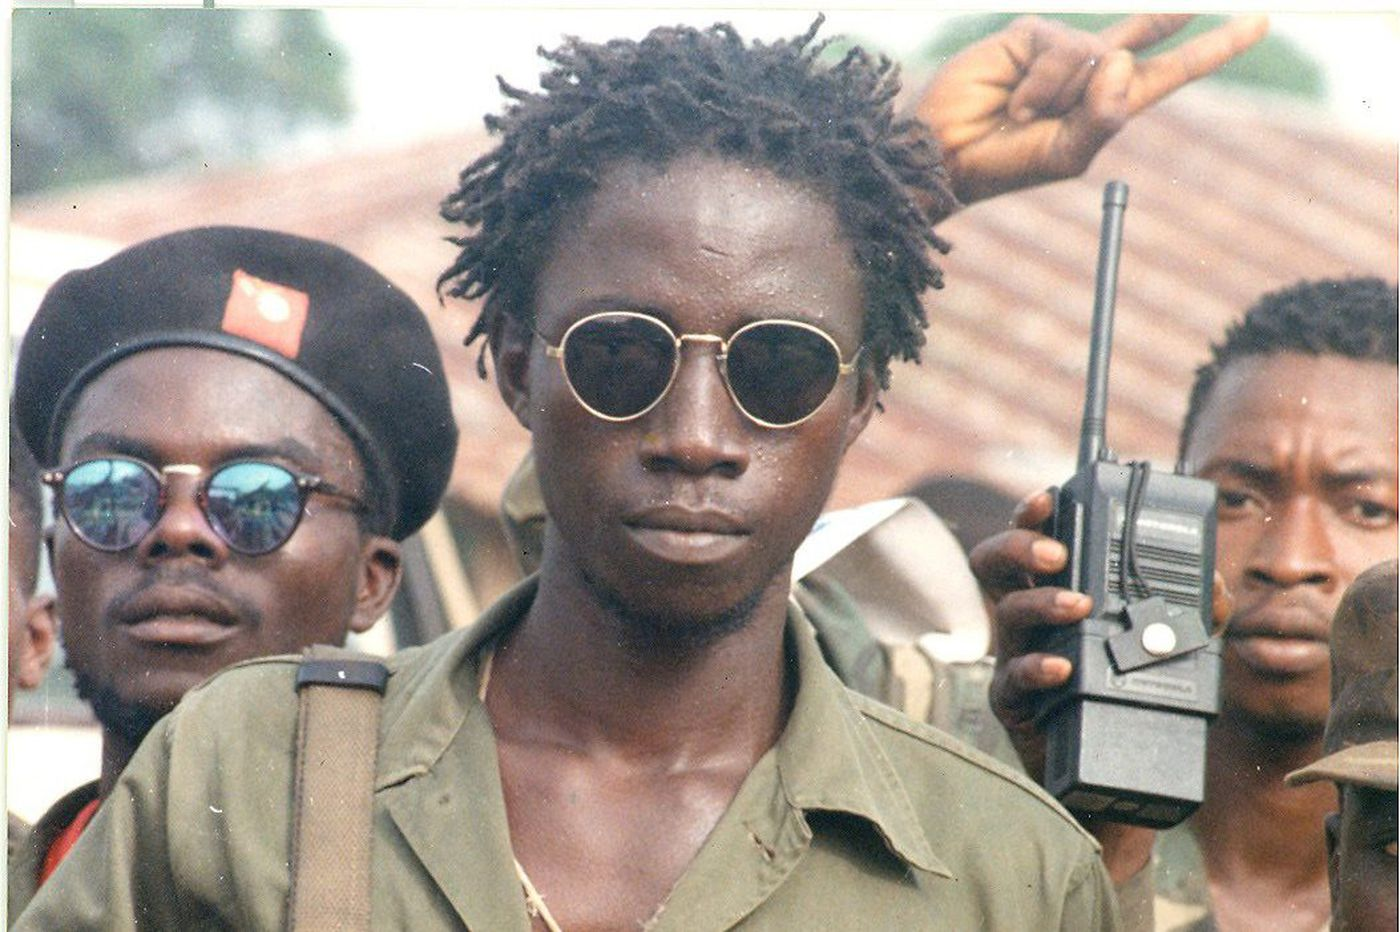 'Jungle Jabbah's' war: Accused Liberian's own story emerges in court